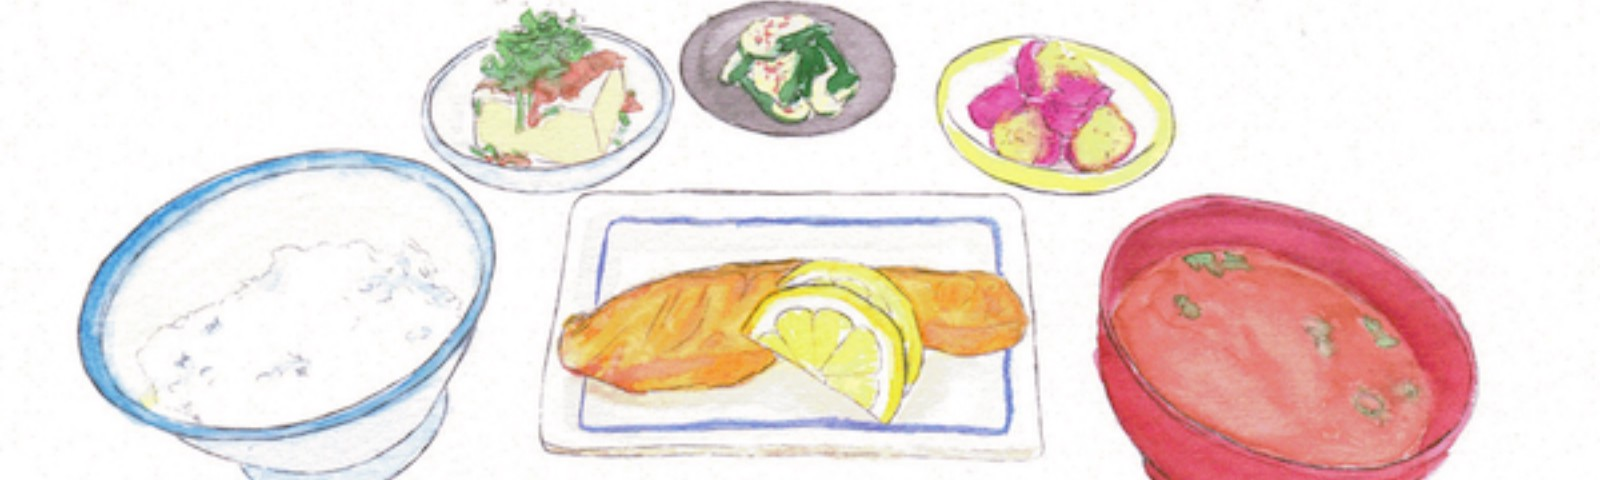 An illustration of a Japanese breakfast of fish, rice, miso, etc.